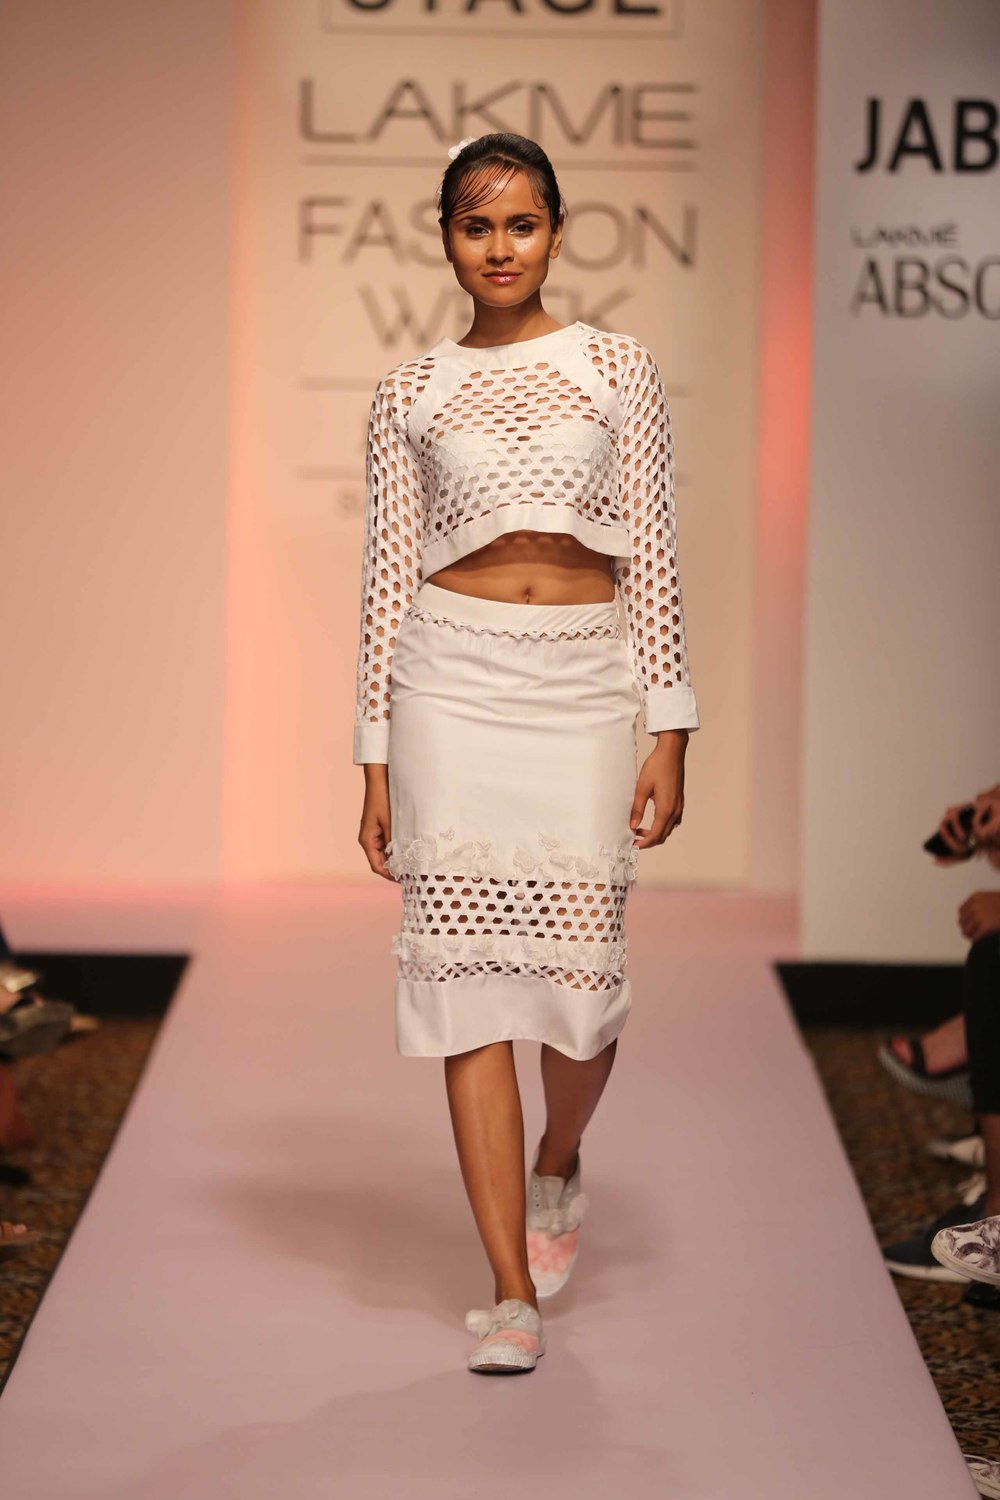 Surabhi Shekhar  - Lakme Fashion Week Summer/Resort 2015